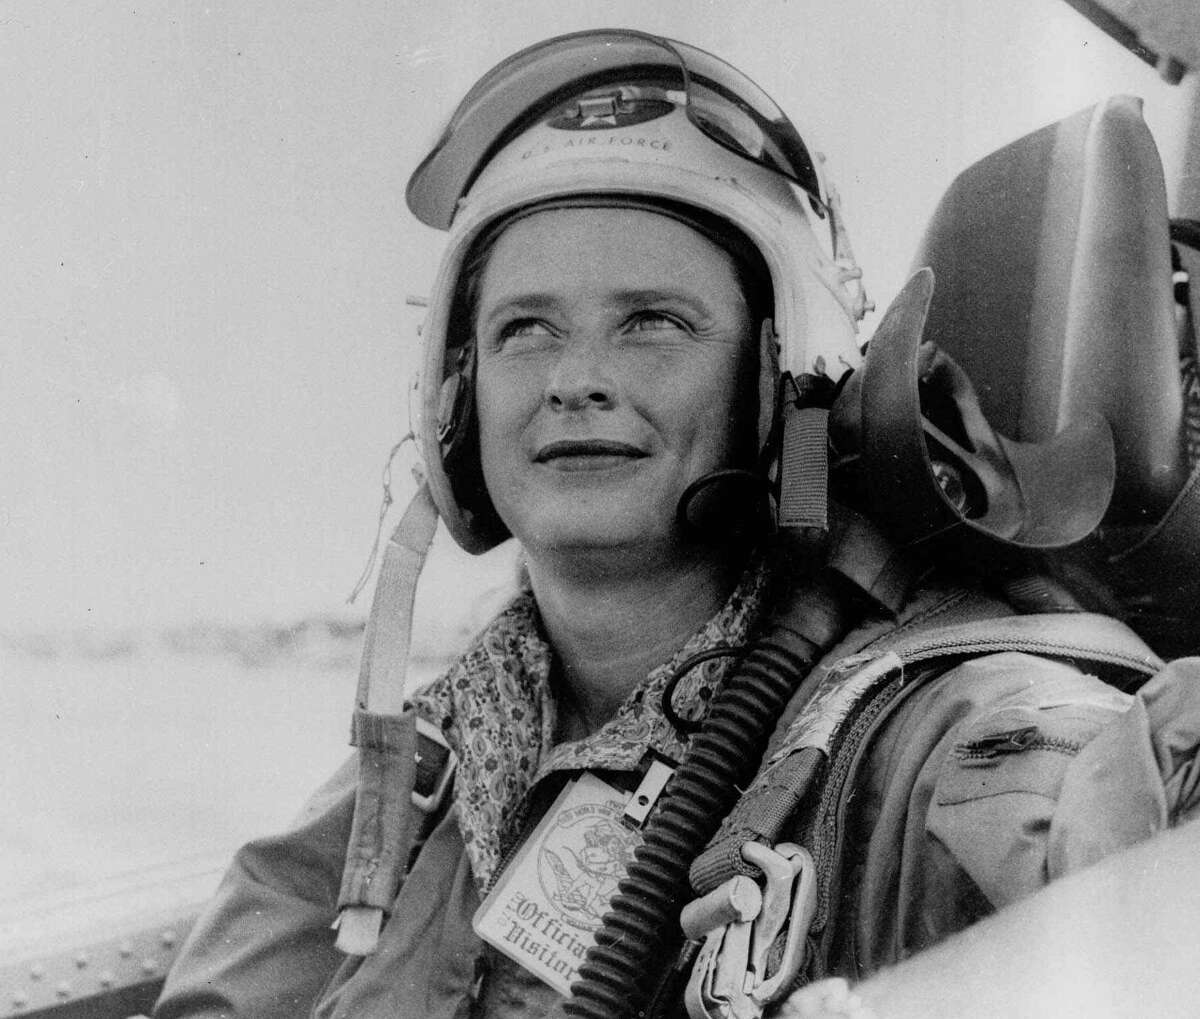 This 1961 file photo shows astronaut candidate Jerrie Cobb in the cockpit of a military aircraft. Cobb was never given the chance to go into space, as NASA wanted only jet test pilots - and that meant only men. Cobb was a record-setting pilot with more than 10,000 hours logged in aircraft. She was one of the Mercury 13 - thirteen women tested to be astronauts until NASA shut down the program in the 1960s.